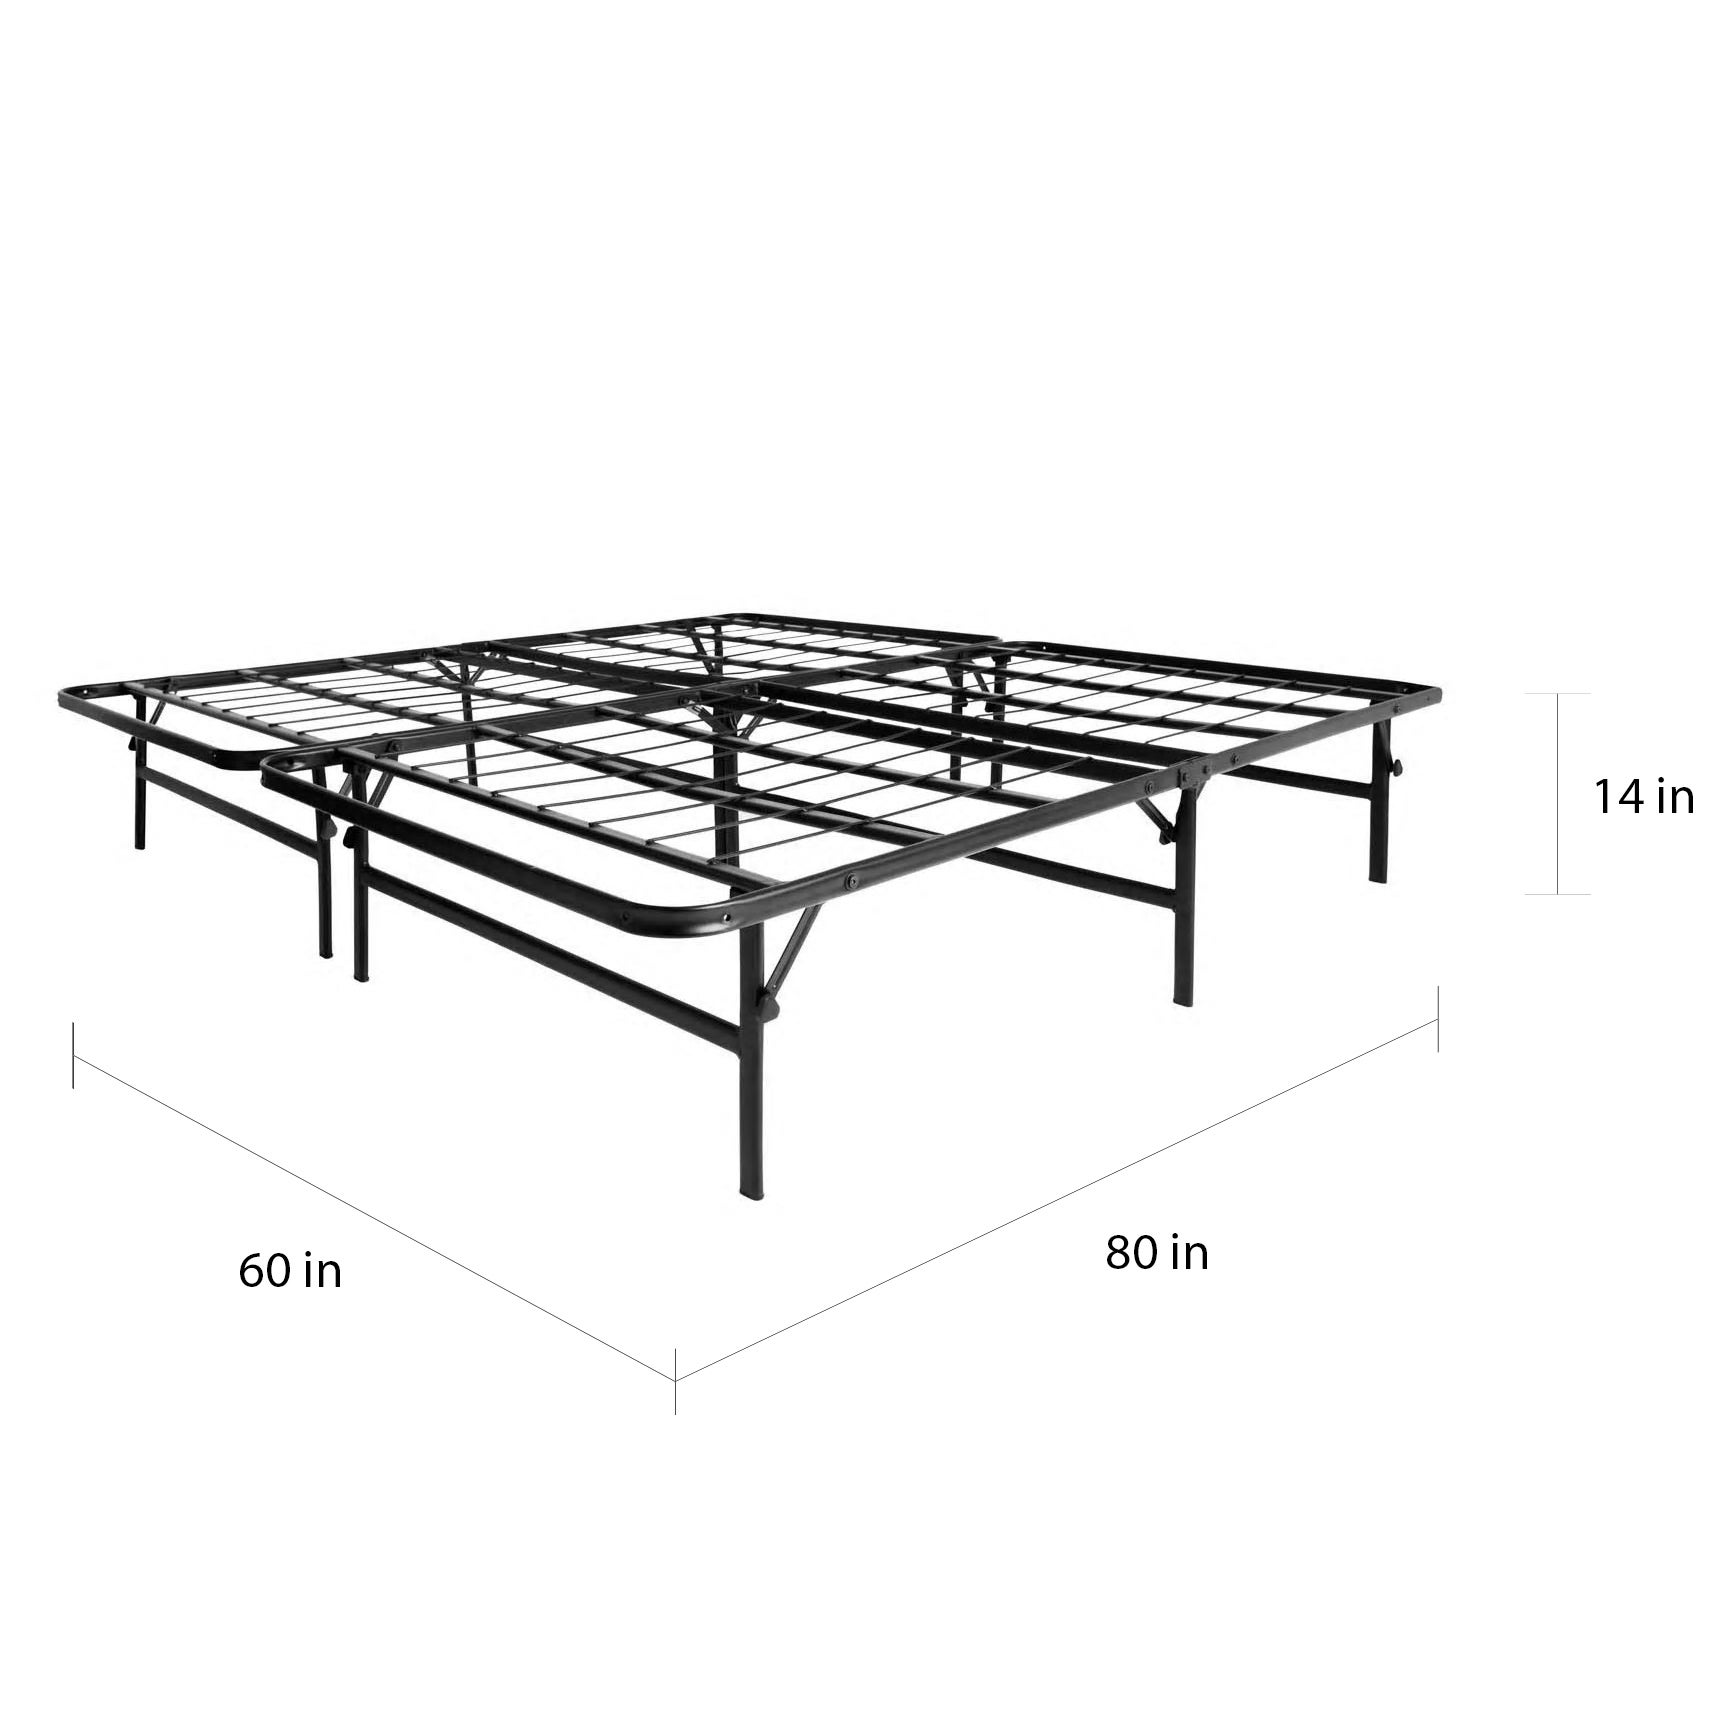 Foldable Metal Platform Bed Frame And Mattress Foundation Queen By Lucid Comfort Collection Overstock 10756074